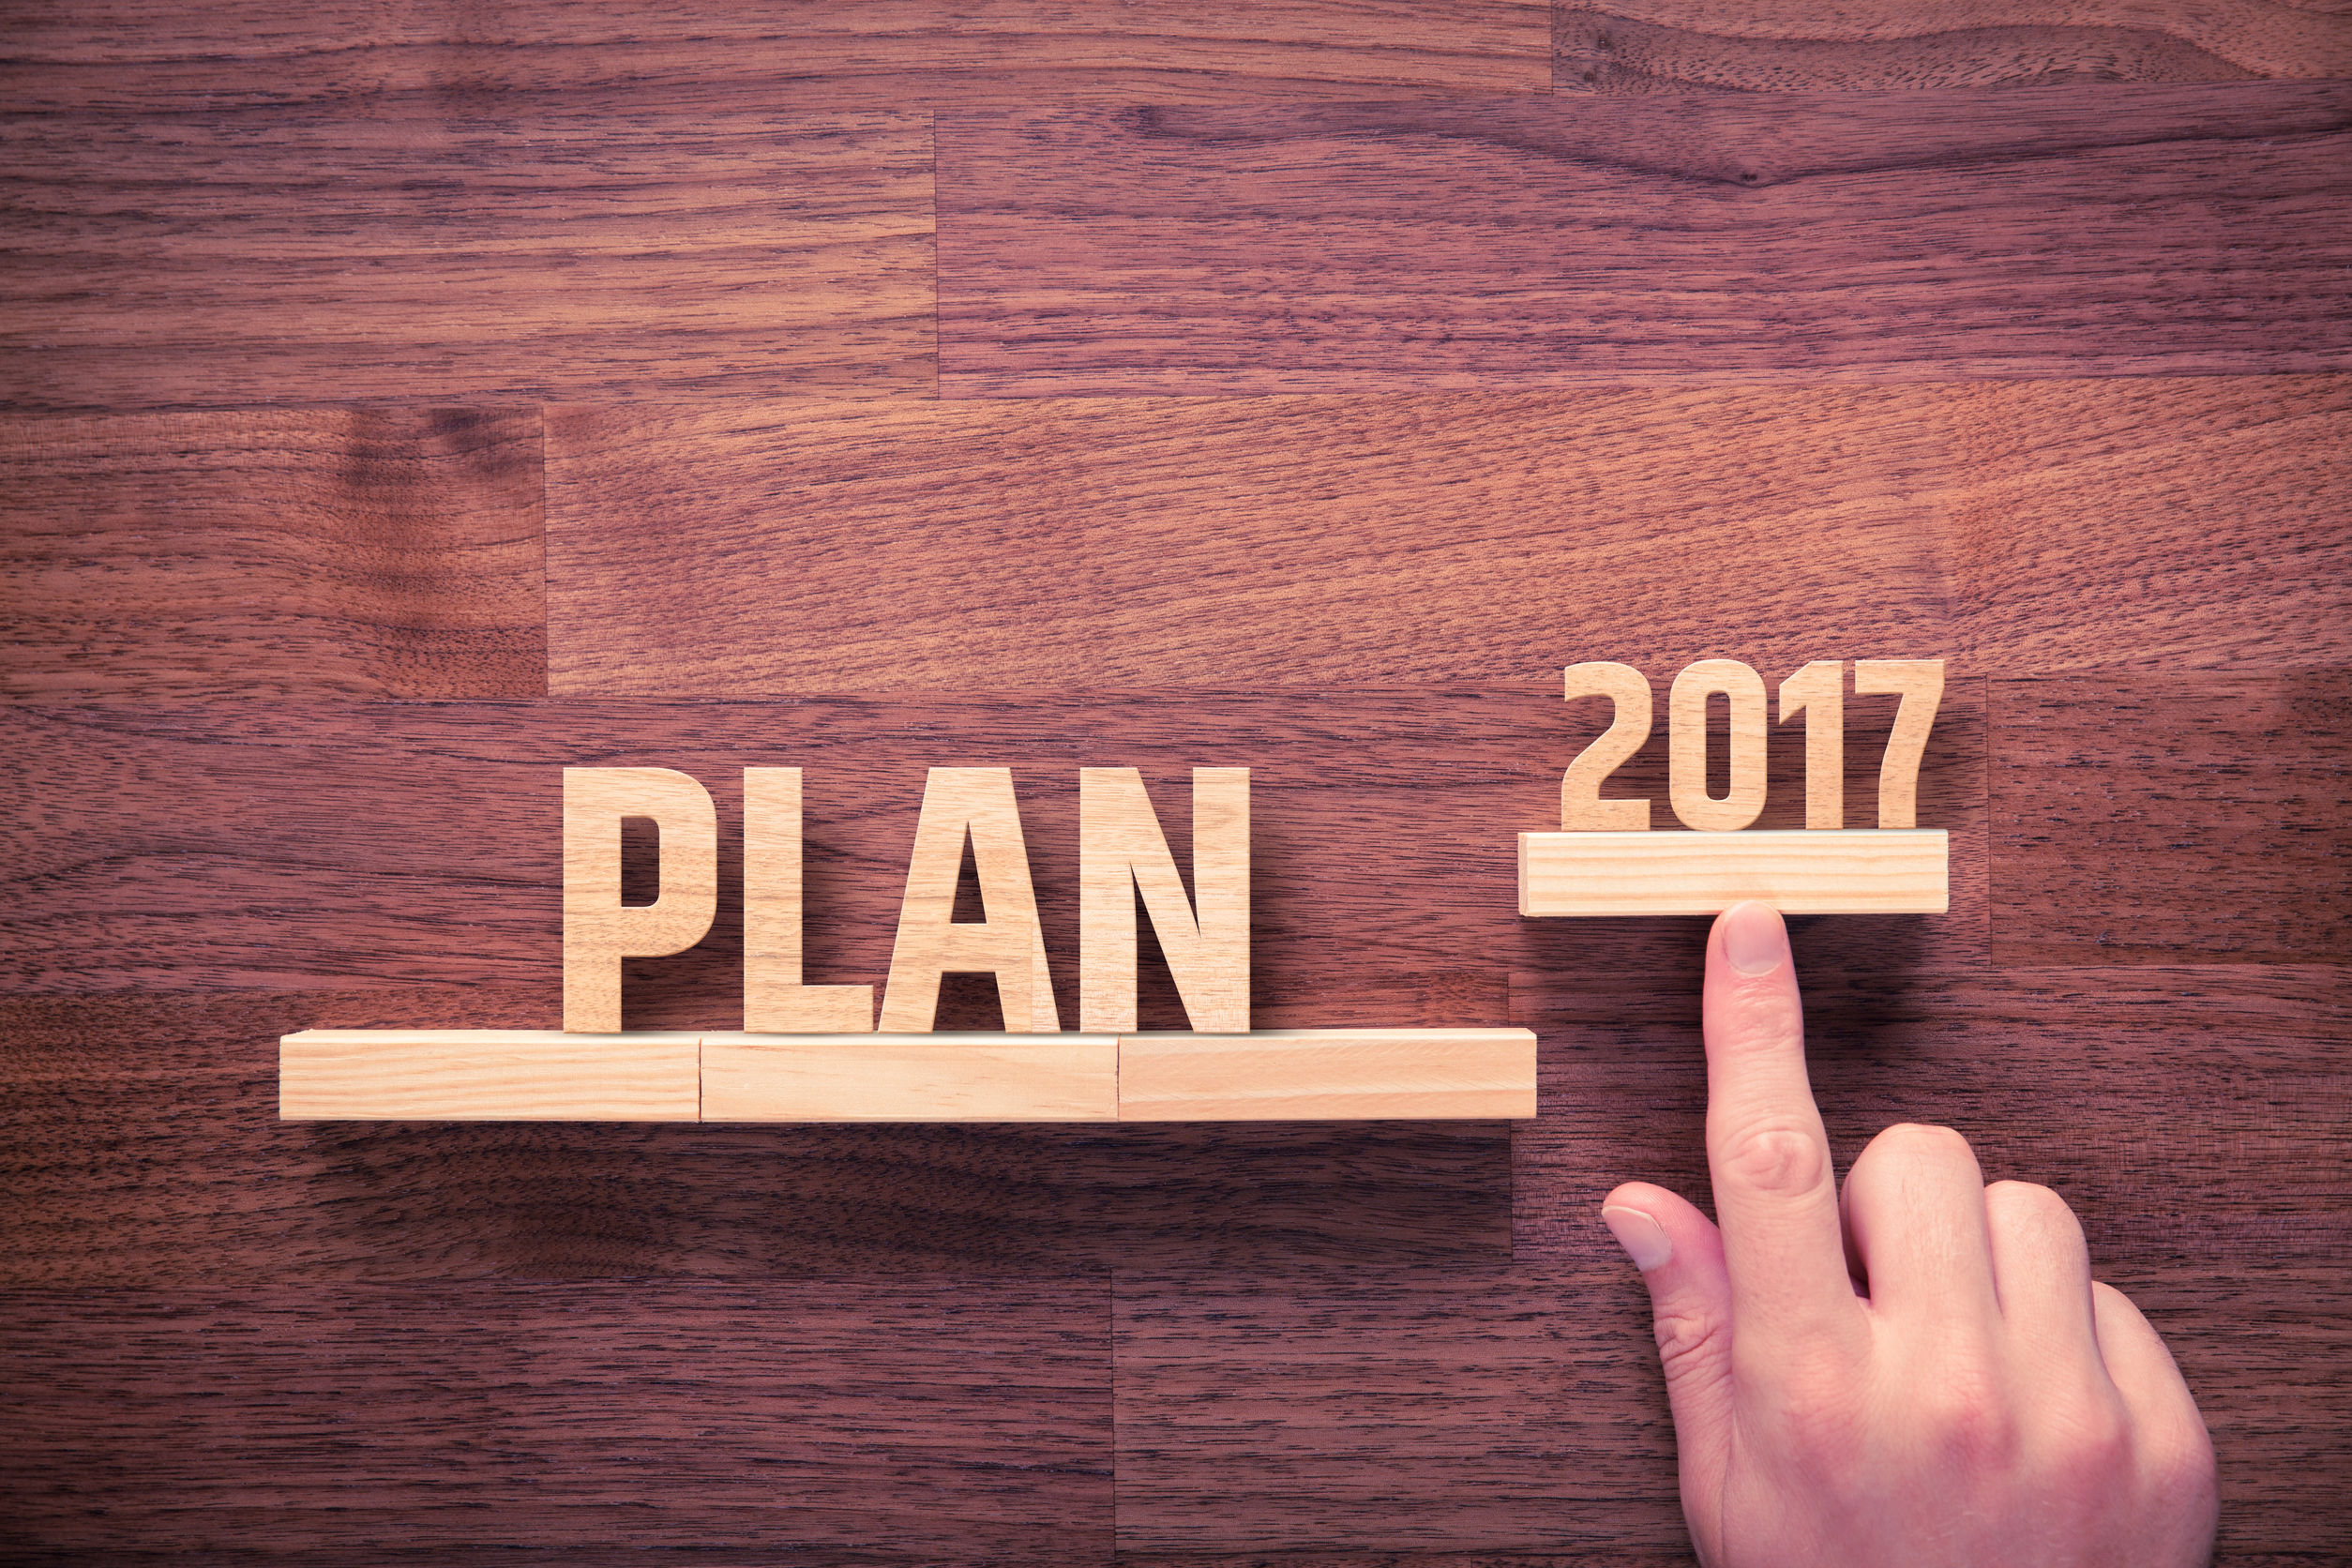 63909338 - businessman plan 2017. business new year plans, goals and targets concept.